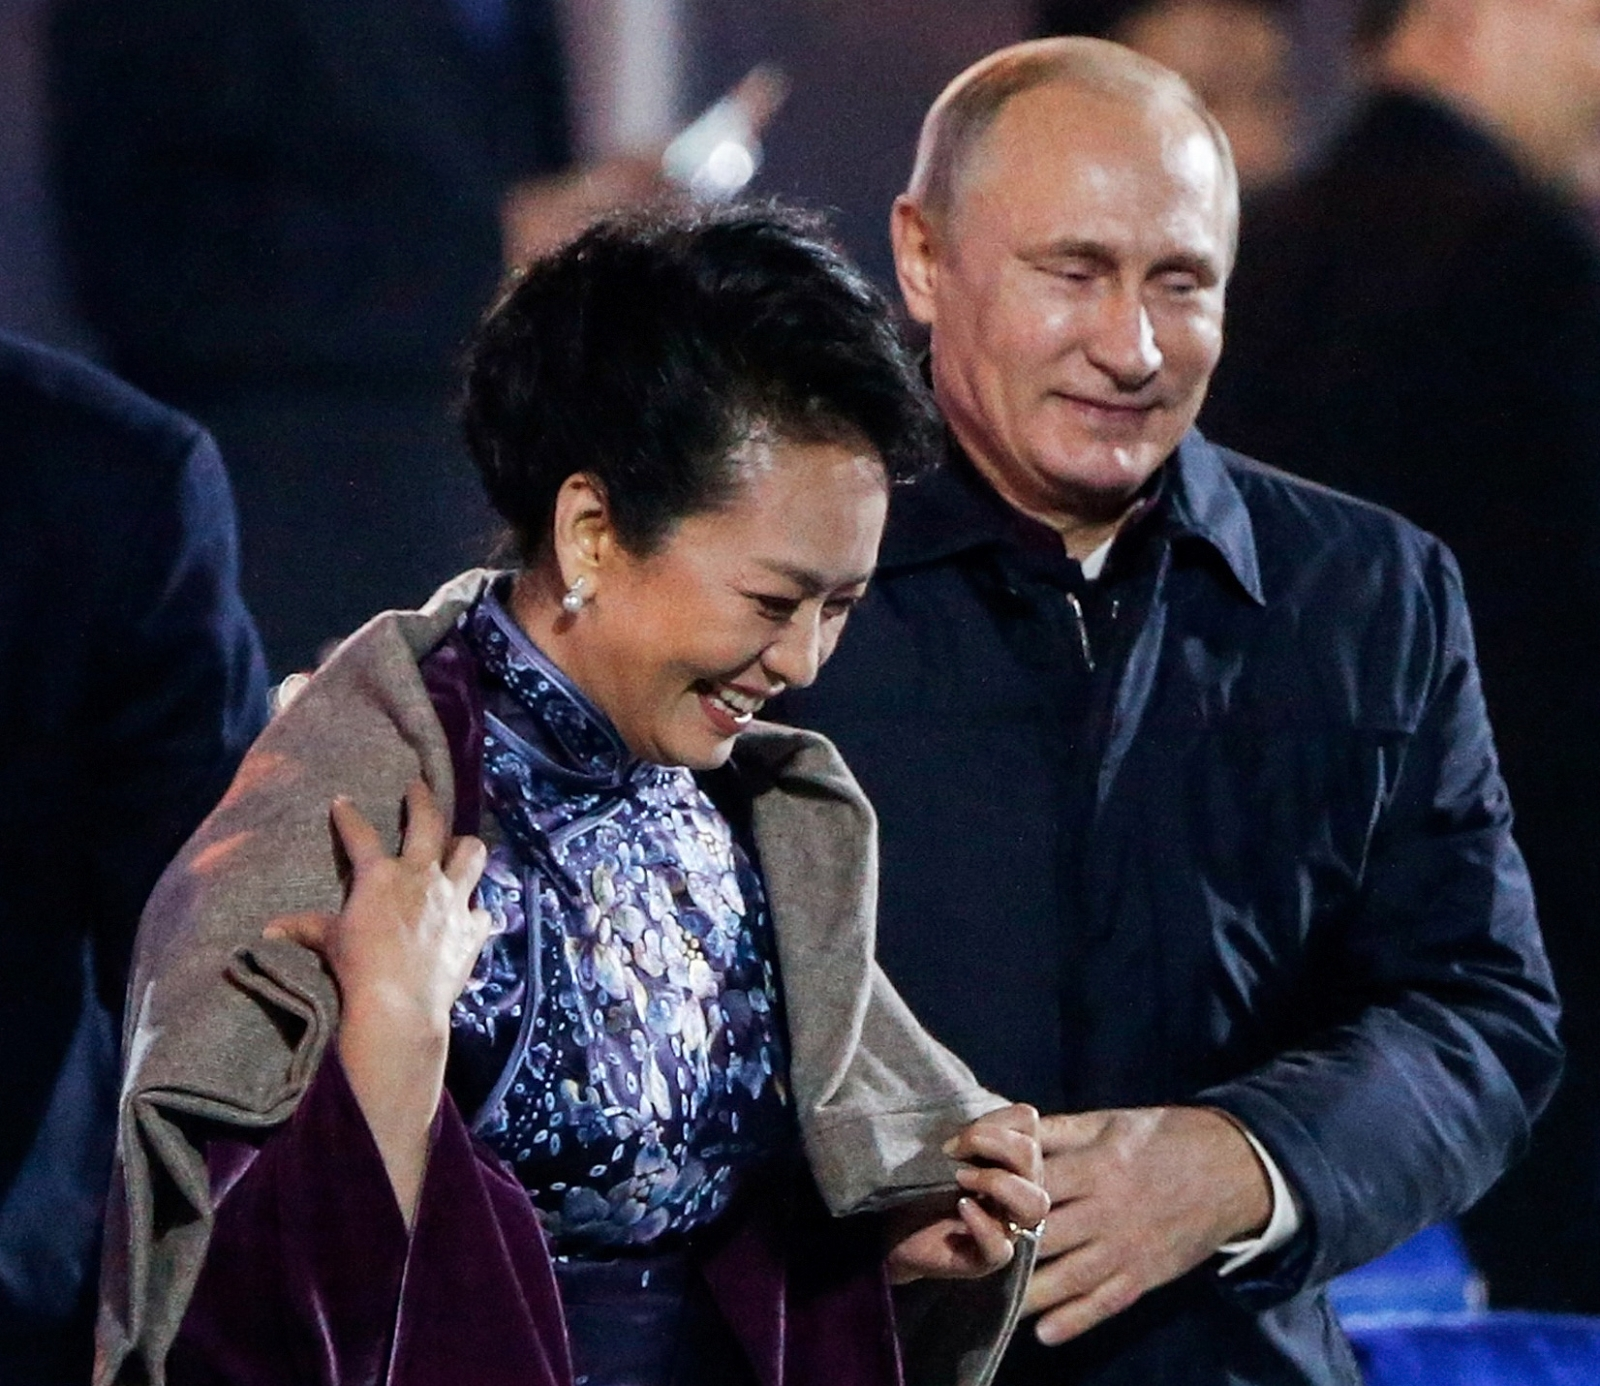 Vladimir Putin Offers Shawl to China's First Lady Peng Liyuan